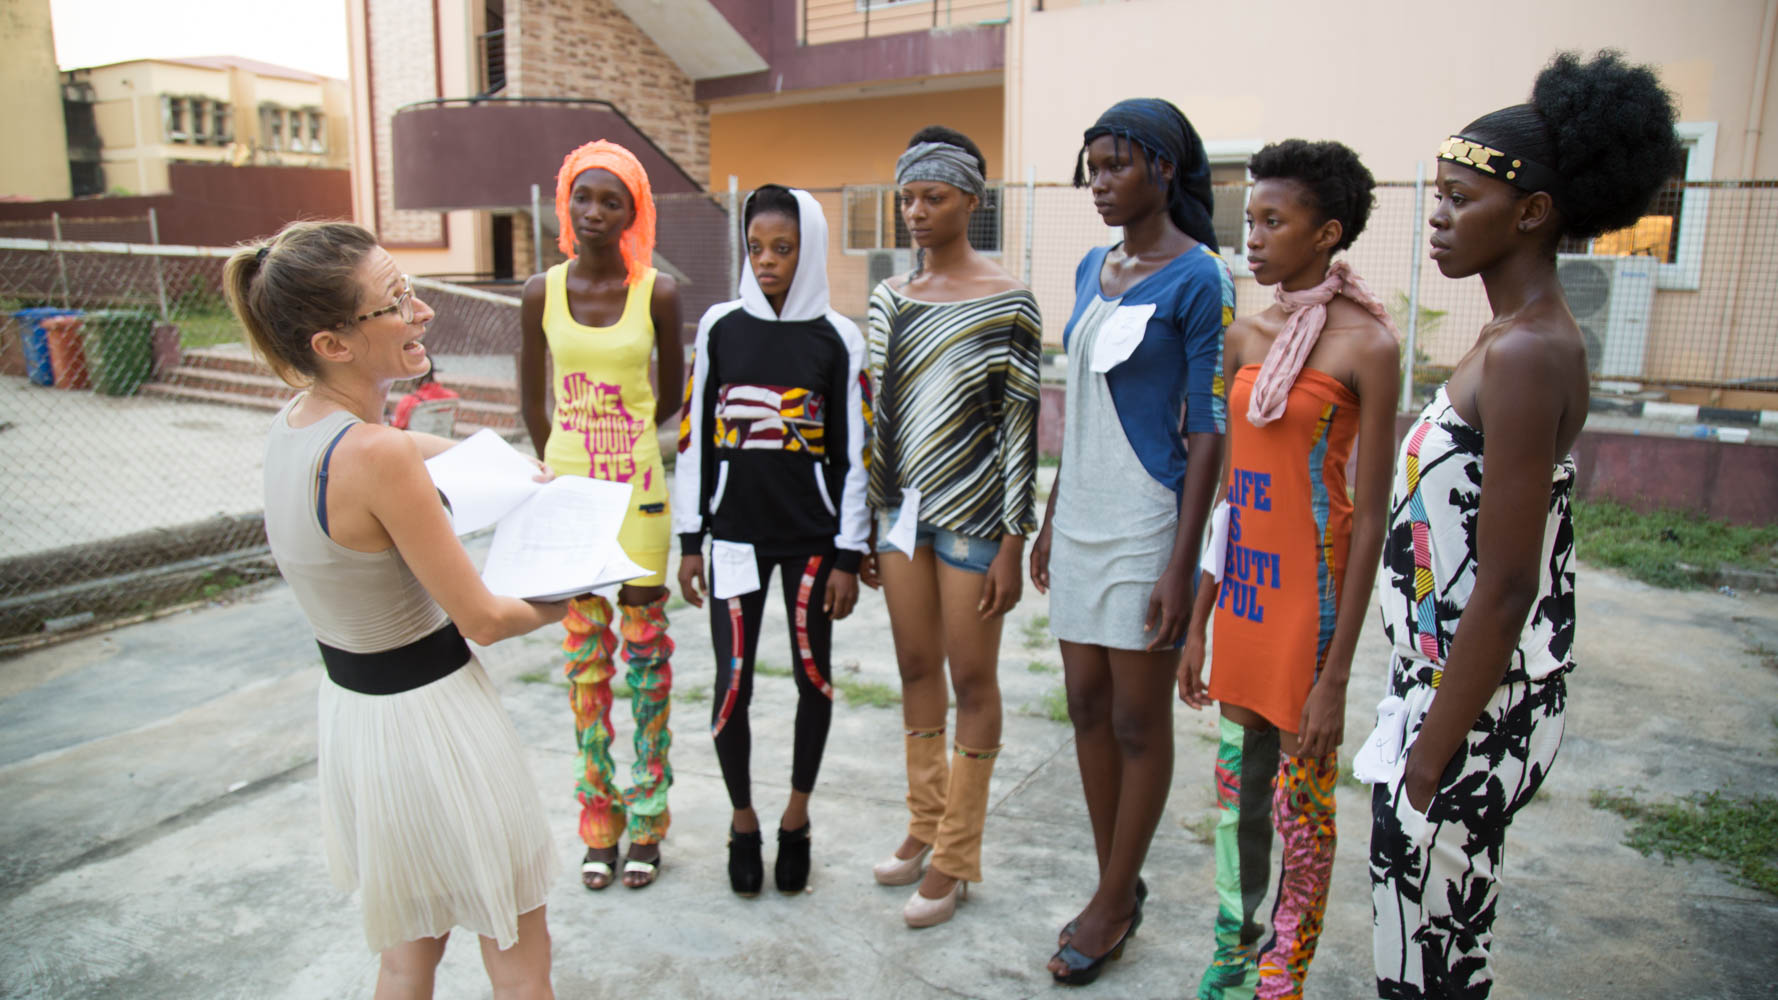 The 6 finalists who will go Lagos for the Finals!